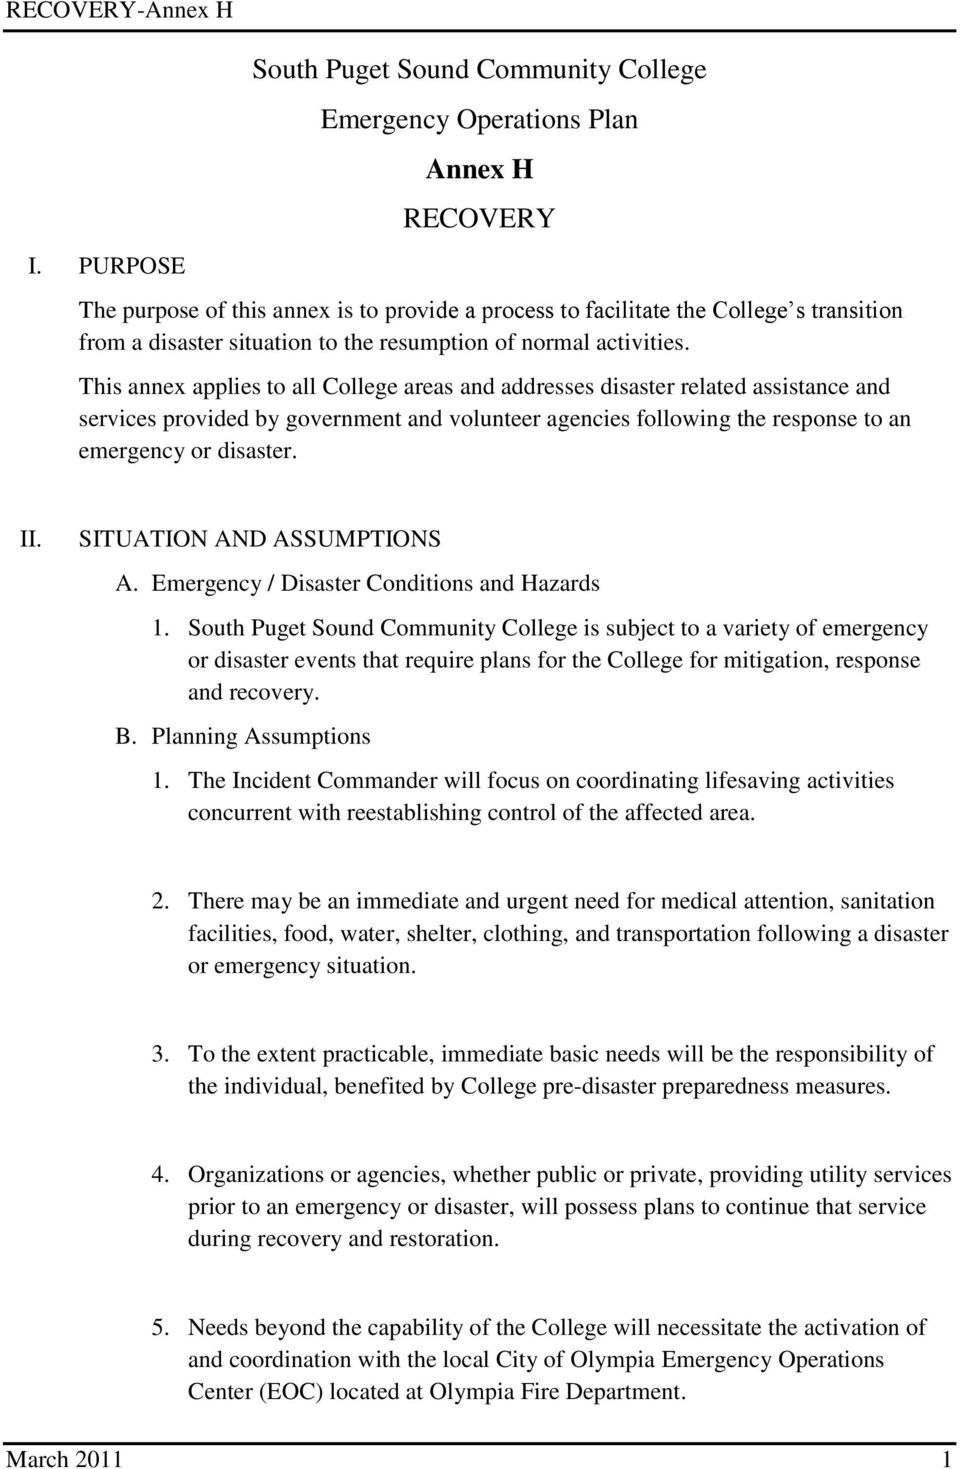 This annex applies to all College areas and addresses disaster related assistance and services provided by government and volunteer agencies following the response to an emergency or disaster. II.